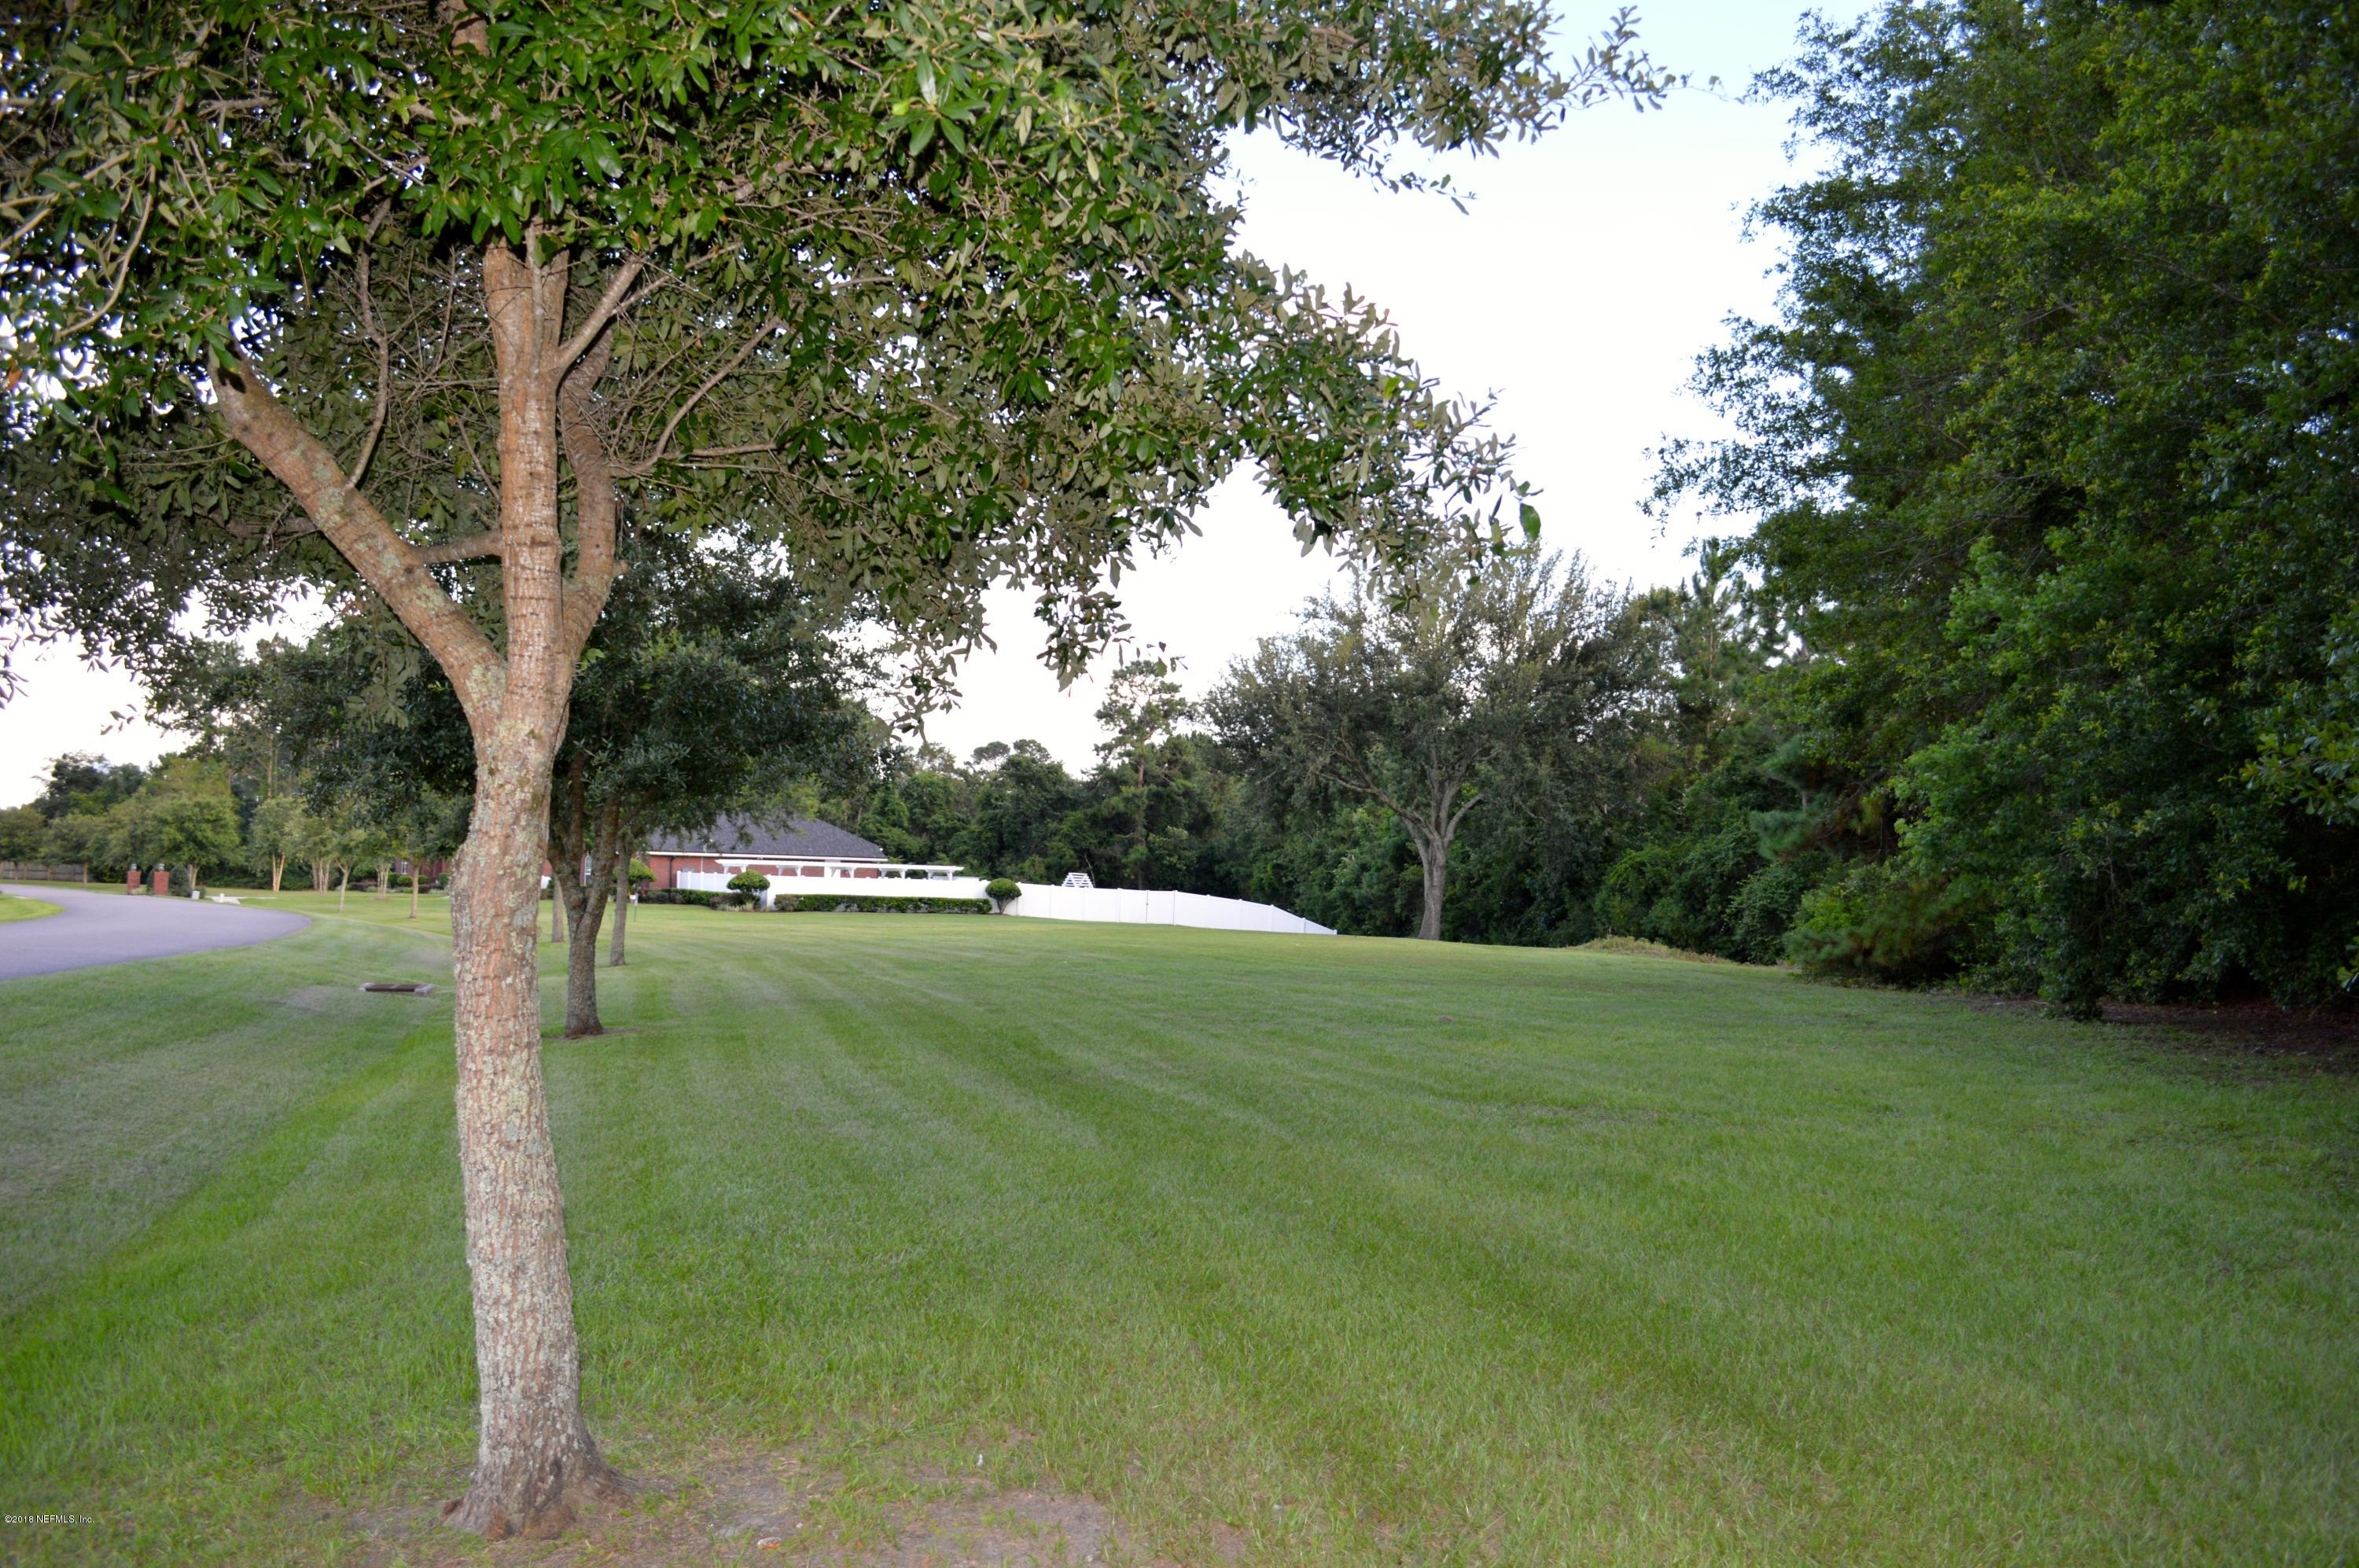 0 COXWELL ESTATES, JACKSONVILLE, FLORIDA 32221, ,Vacant land,For sale,COXWELL ESTATES,945202